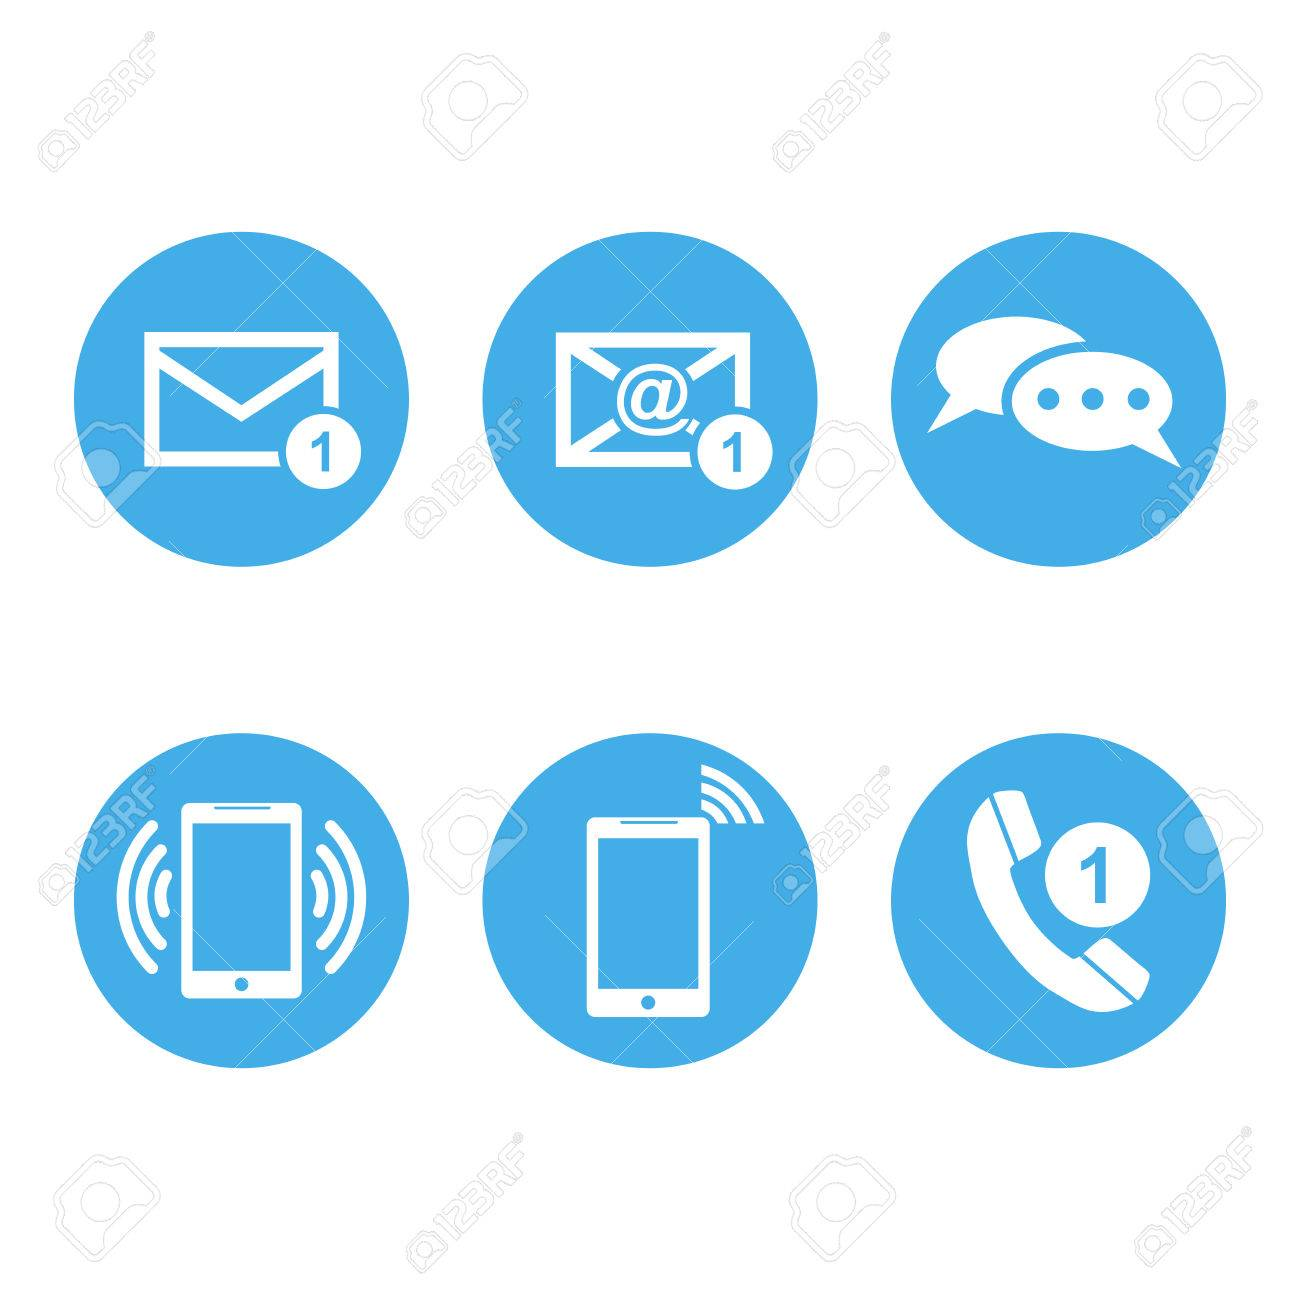 Contact buttons set icons  Email, envelope, phone, mobile  Vector